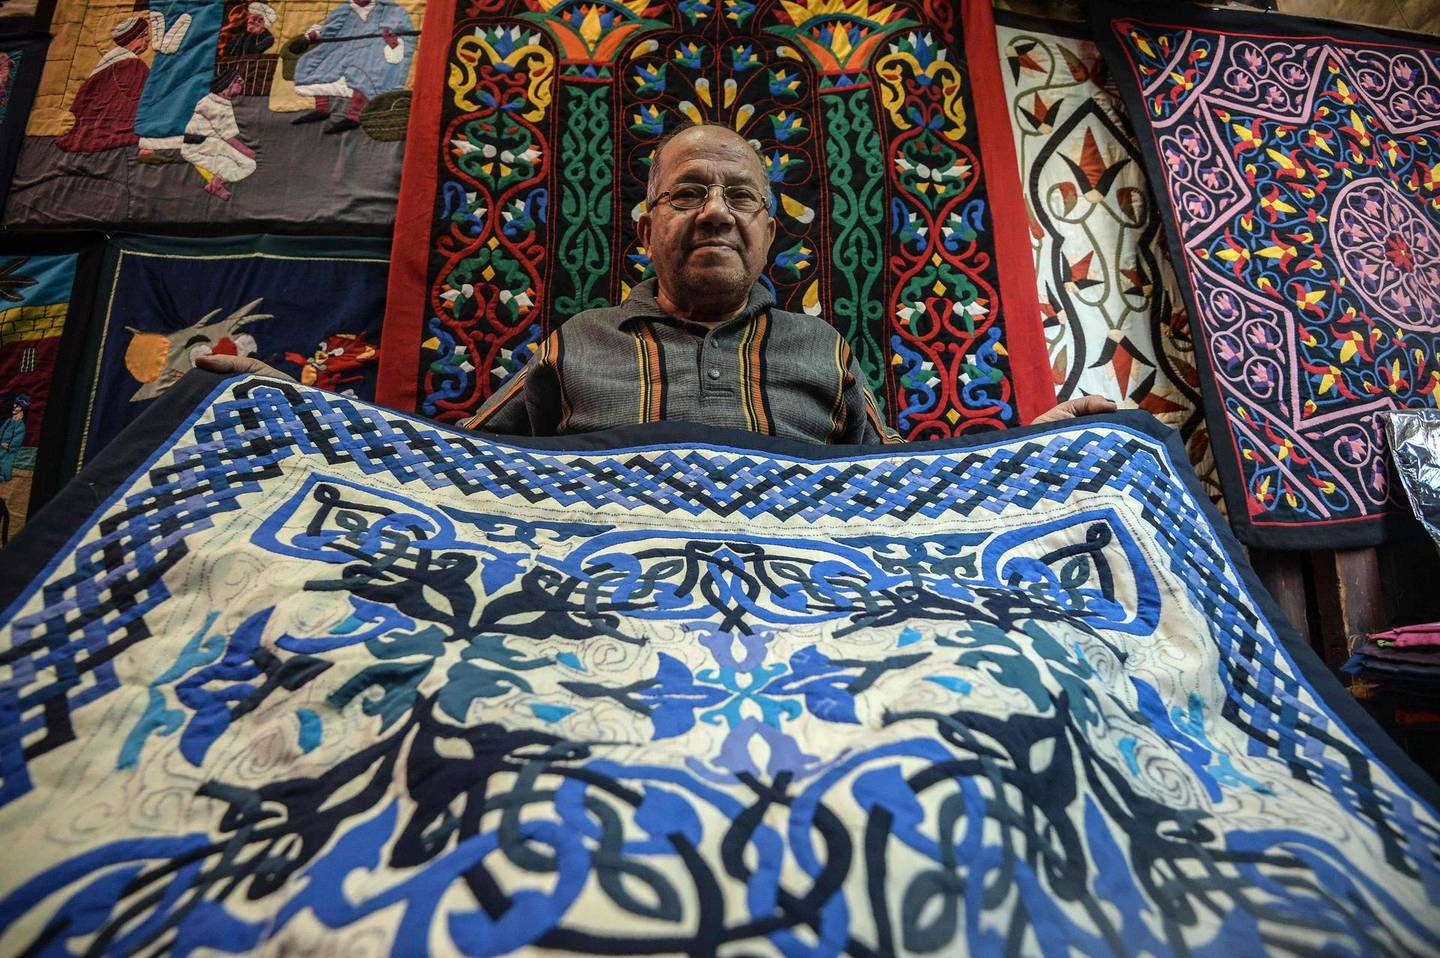 An Egyptian craftsman showcases a tapestry in his shop in Khayamiya Street, or the Street of Tent-makers, in the old city of the Egyptian capital Cairo on December 18, 2018. Along the sides of the roofed street of Khayamiya, or the Street of Tent-makers, dozens of craftsmen's shops have drawn foreign visitors for years until the 2011 uprising toppled longtime ruler Hosni Mubarak after which business has slowed to a trickle. The centuries-old art of Khayamiya, belived to have emerged during the Fatimid dynasty (10th-12th century AD), goes back to the time of travelling caravans, when huge tent pavilions were used as shields from the desert's searing sun. / AFP / Mohamed el-Shahed